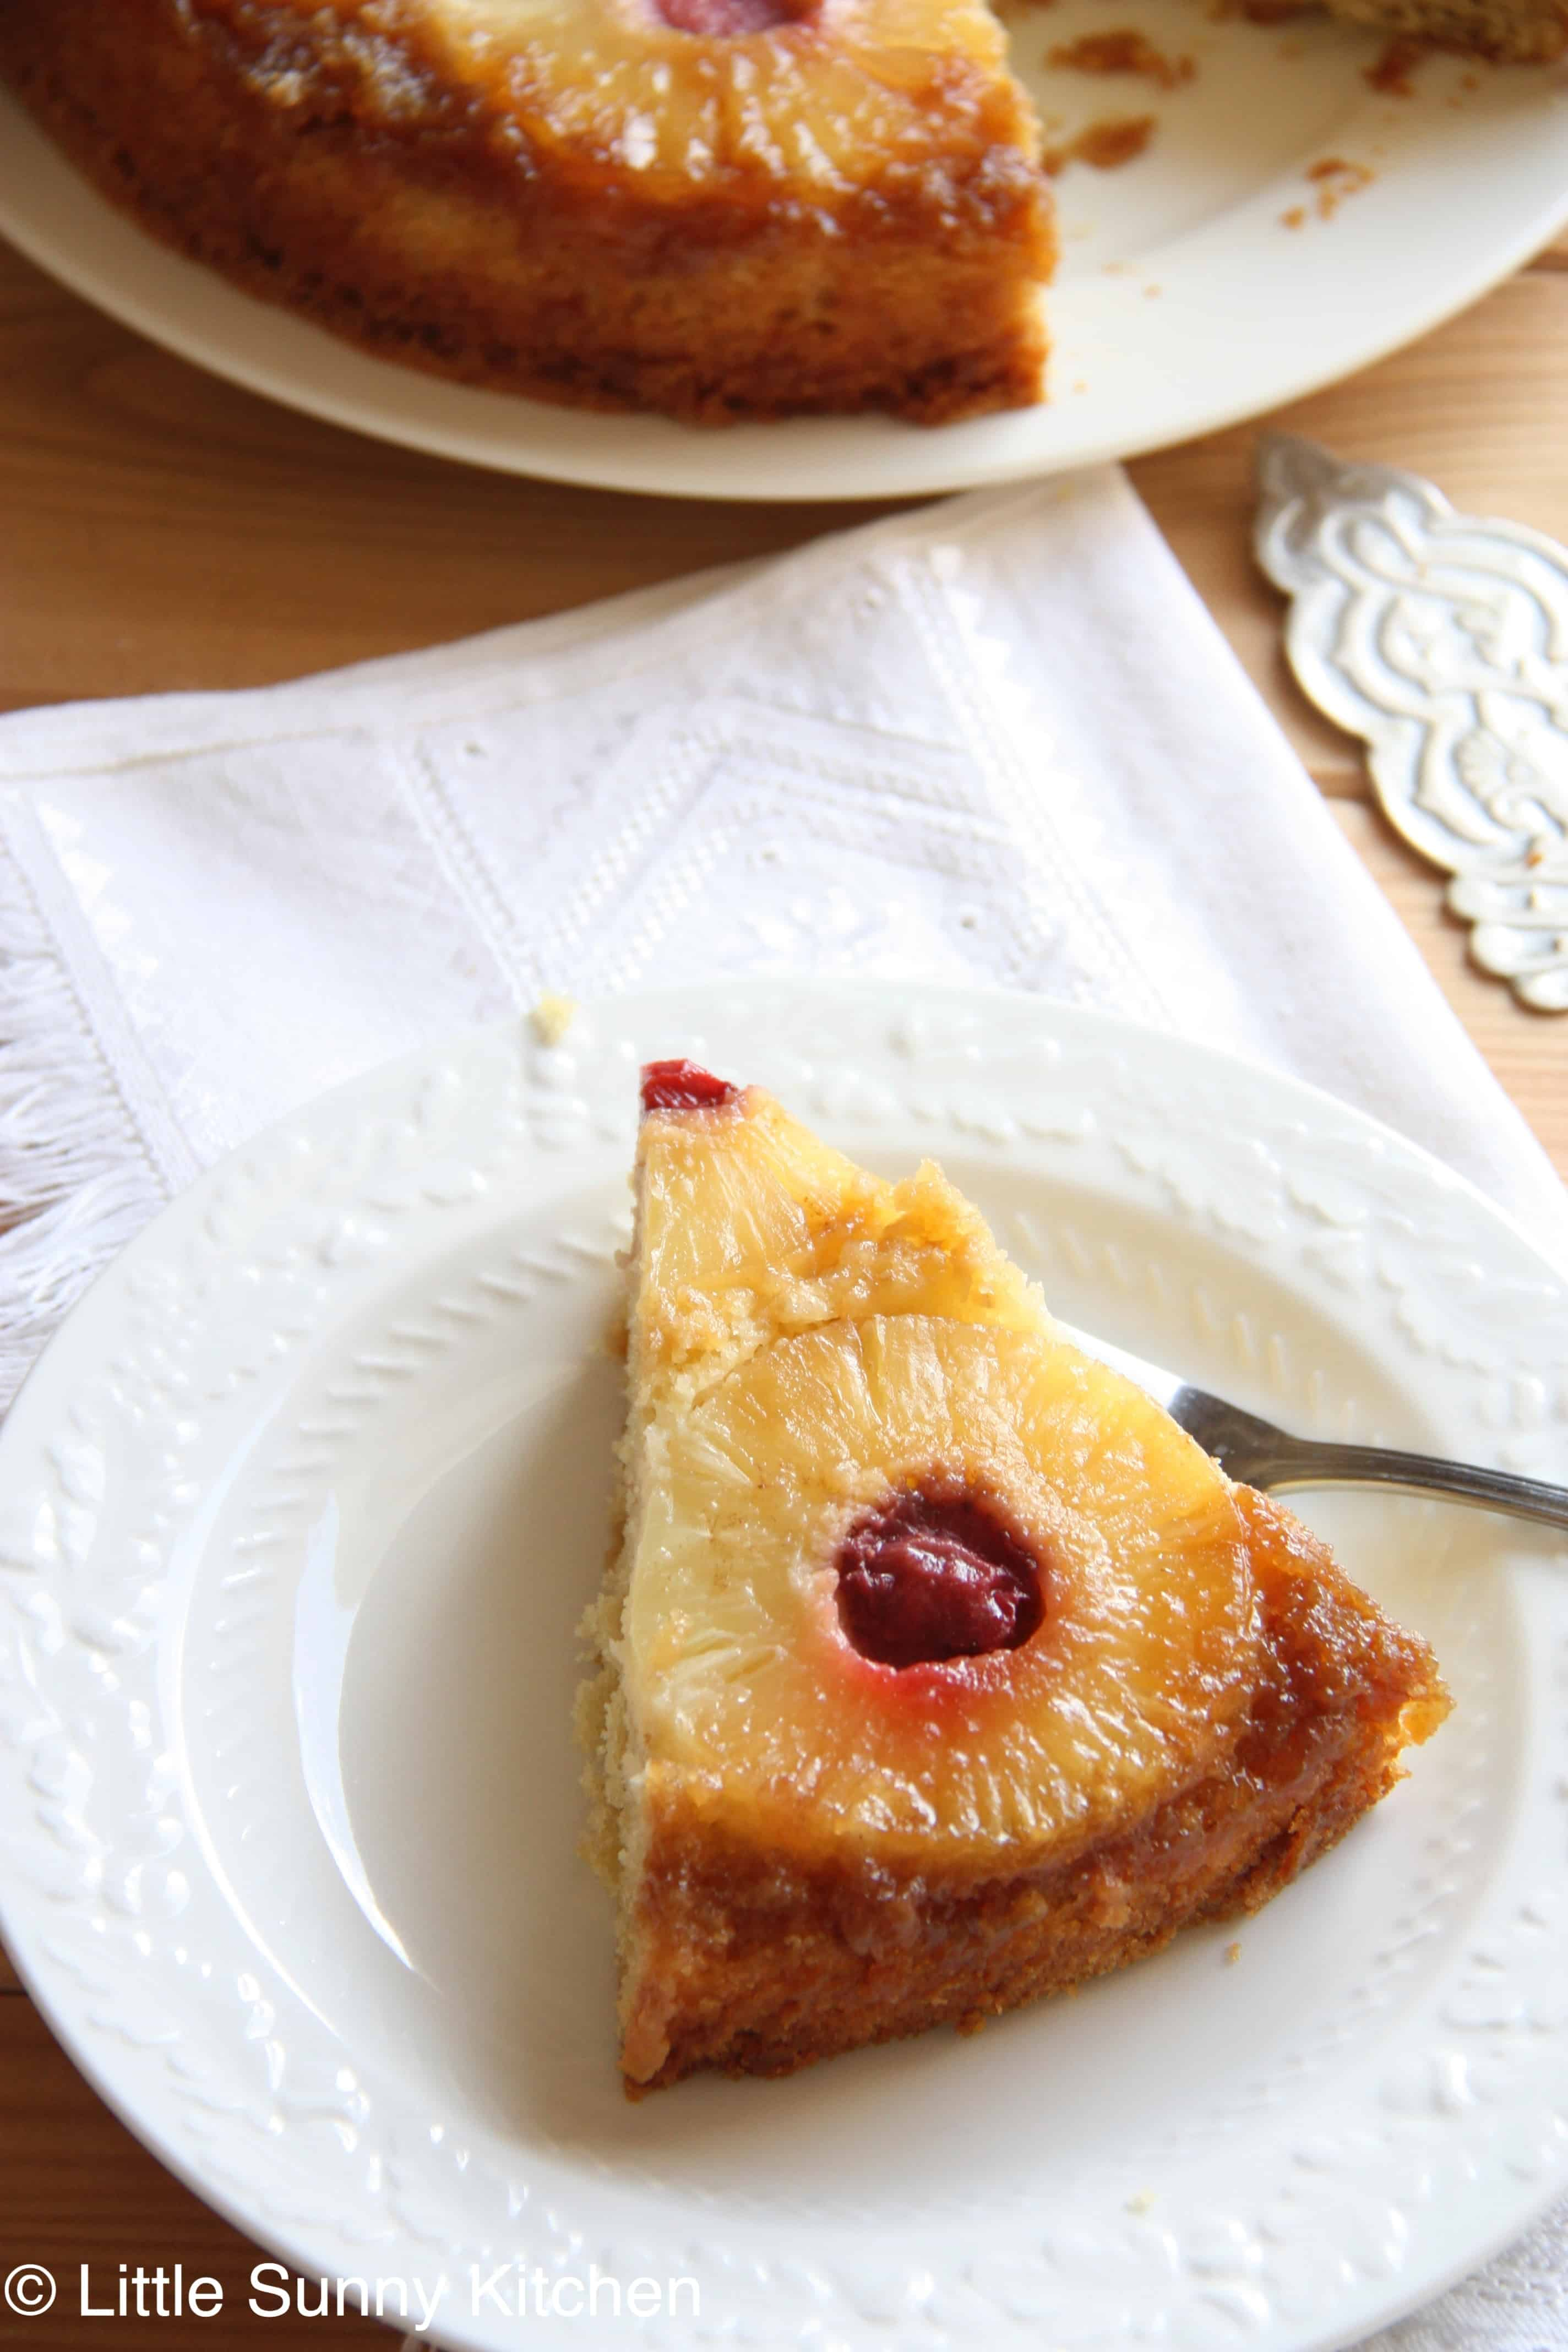 How To Mail Pineapple Upside Down Cake